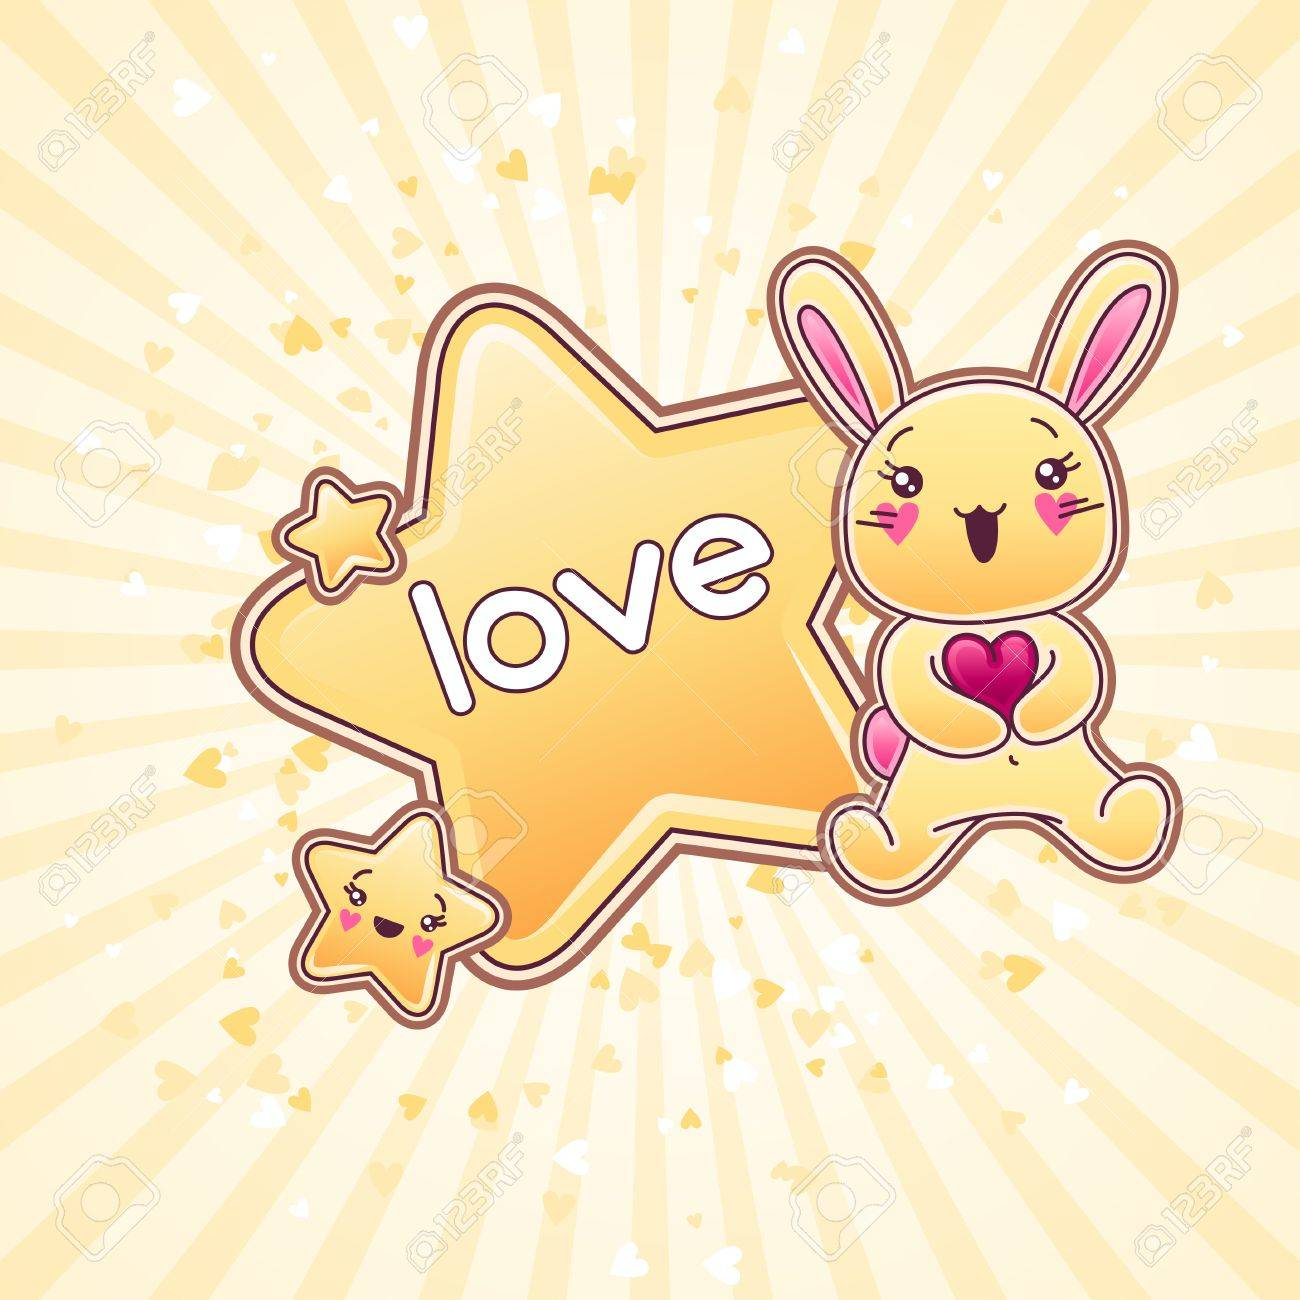 Cute child background with kawaii doodles Stock Vector - 16933435